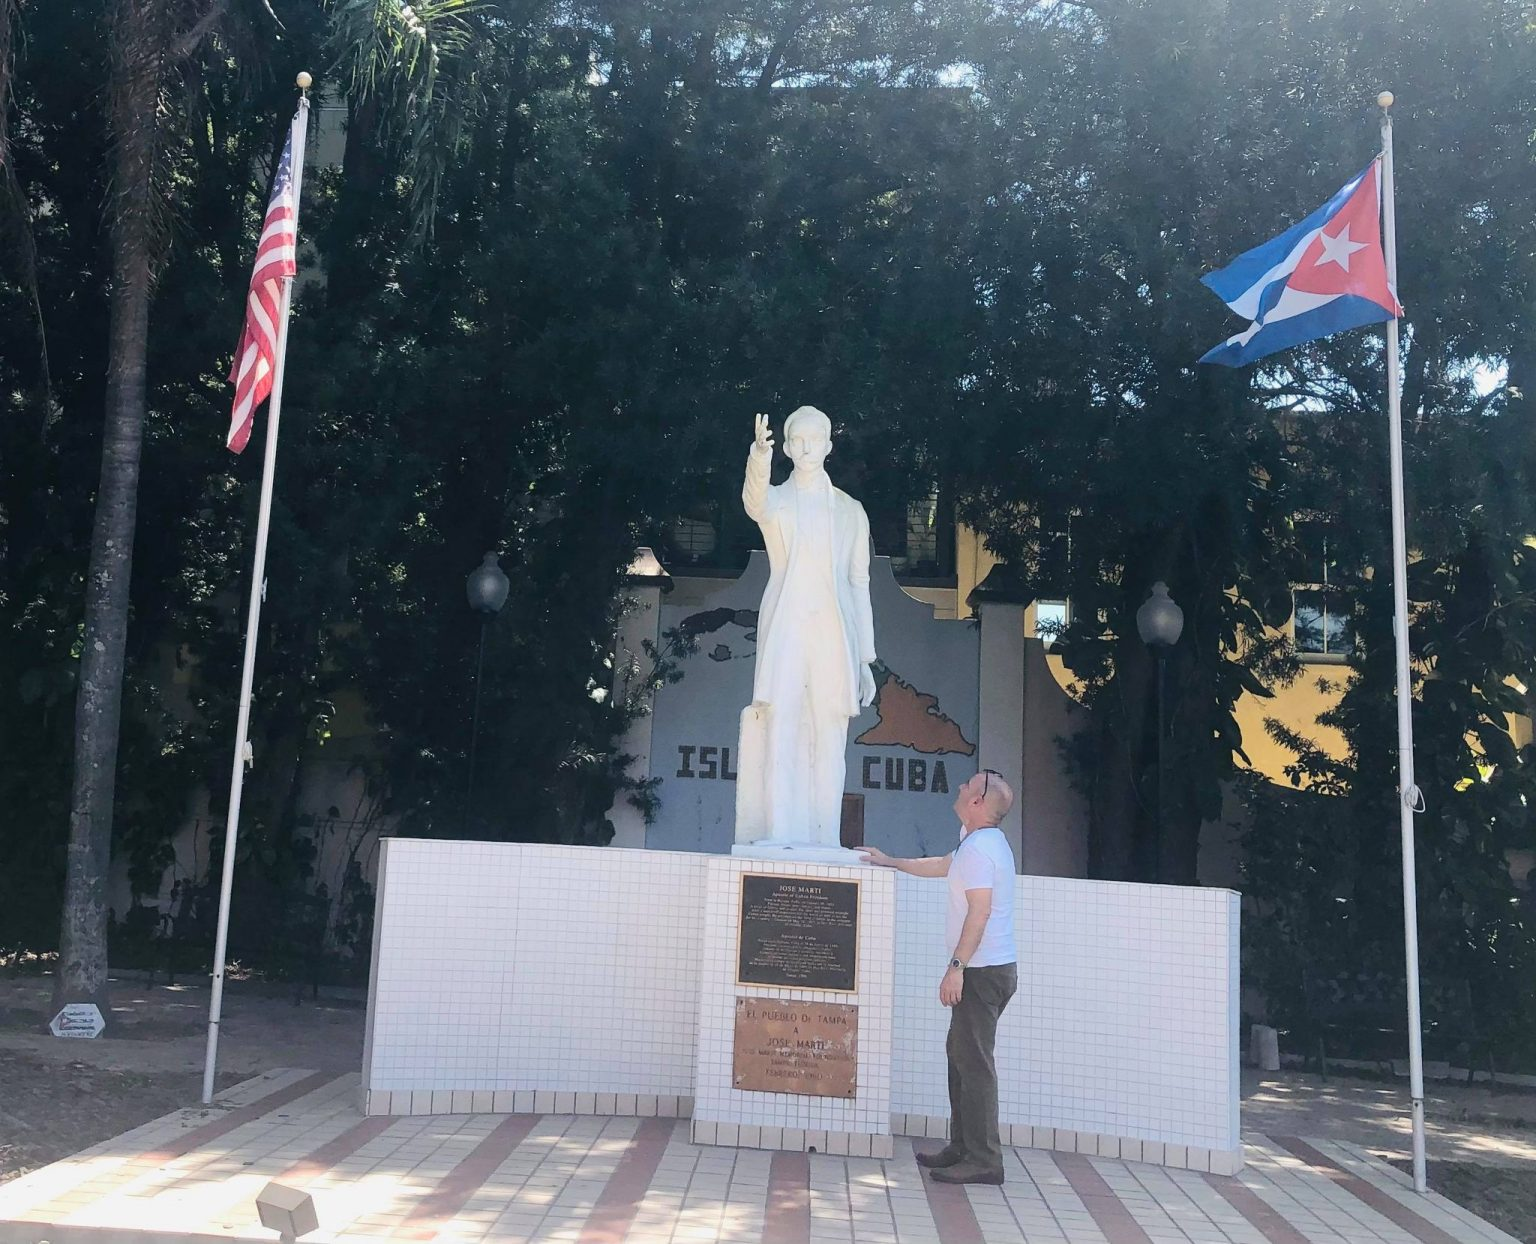 The Cuban-American teacher Carlos Lazo in front of the monument to José Martí in Ybor City, Tampa.